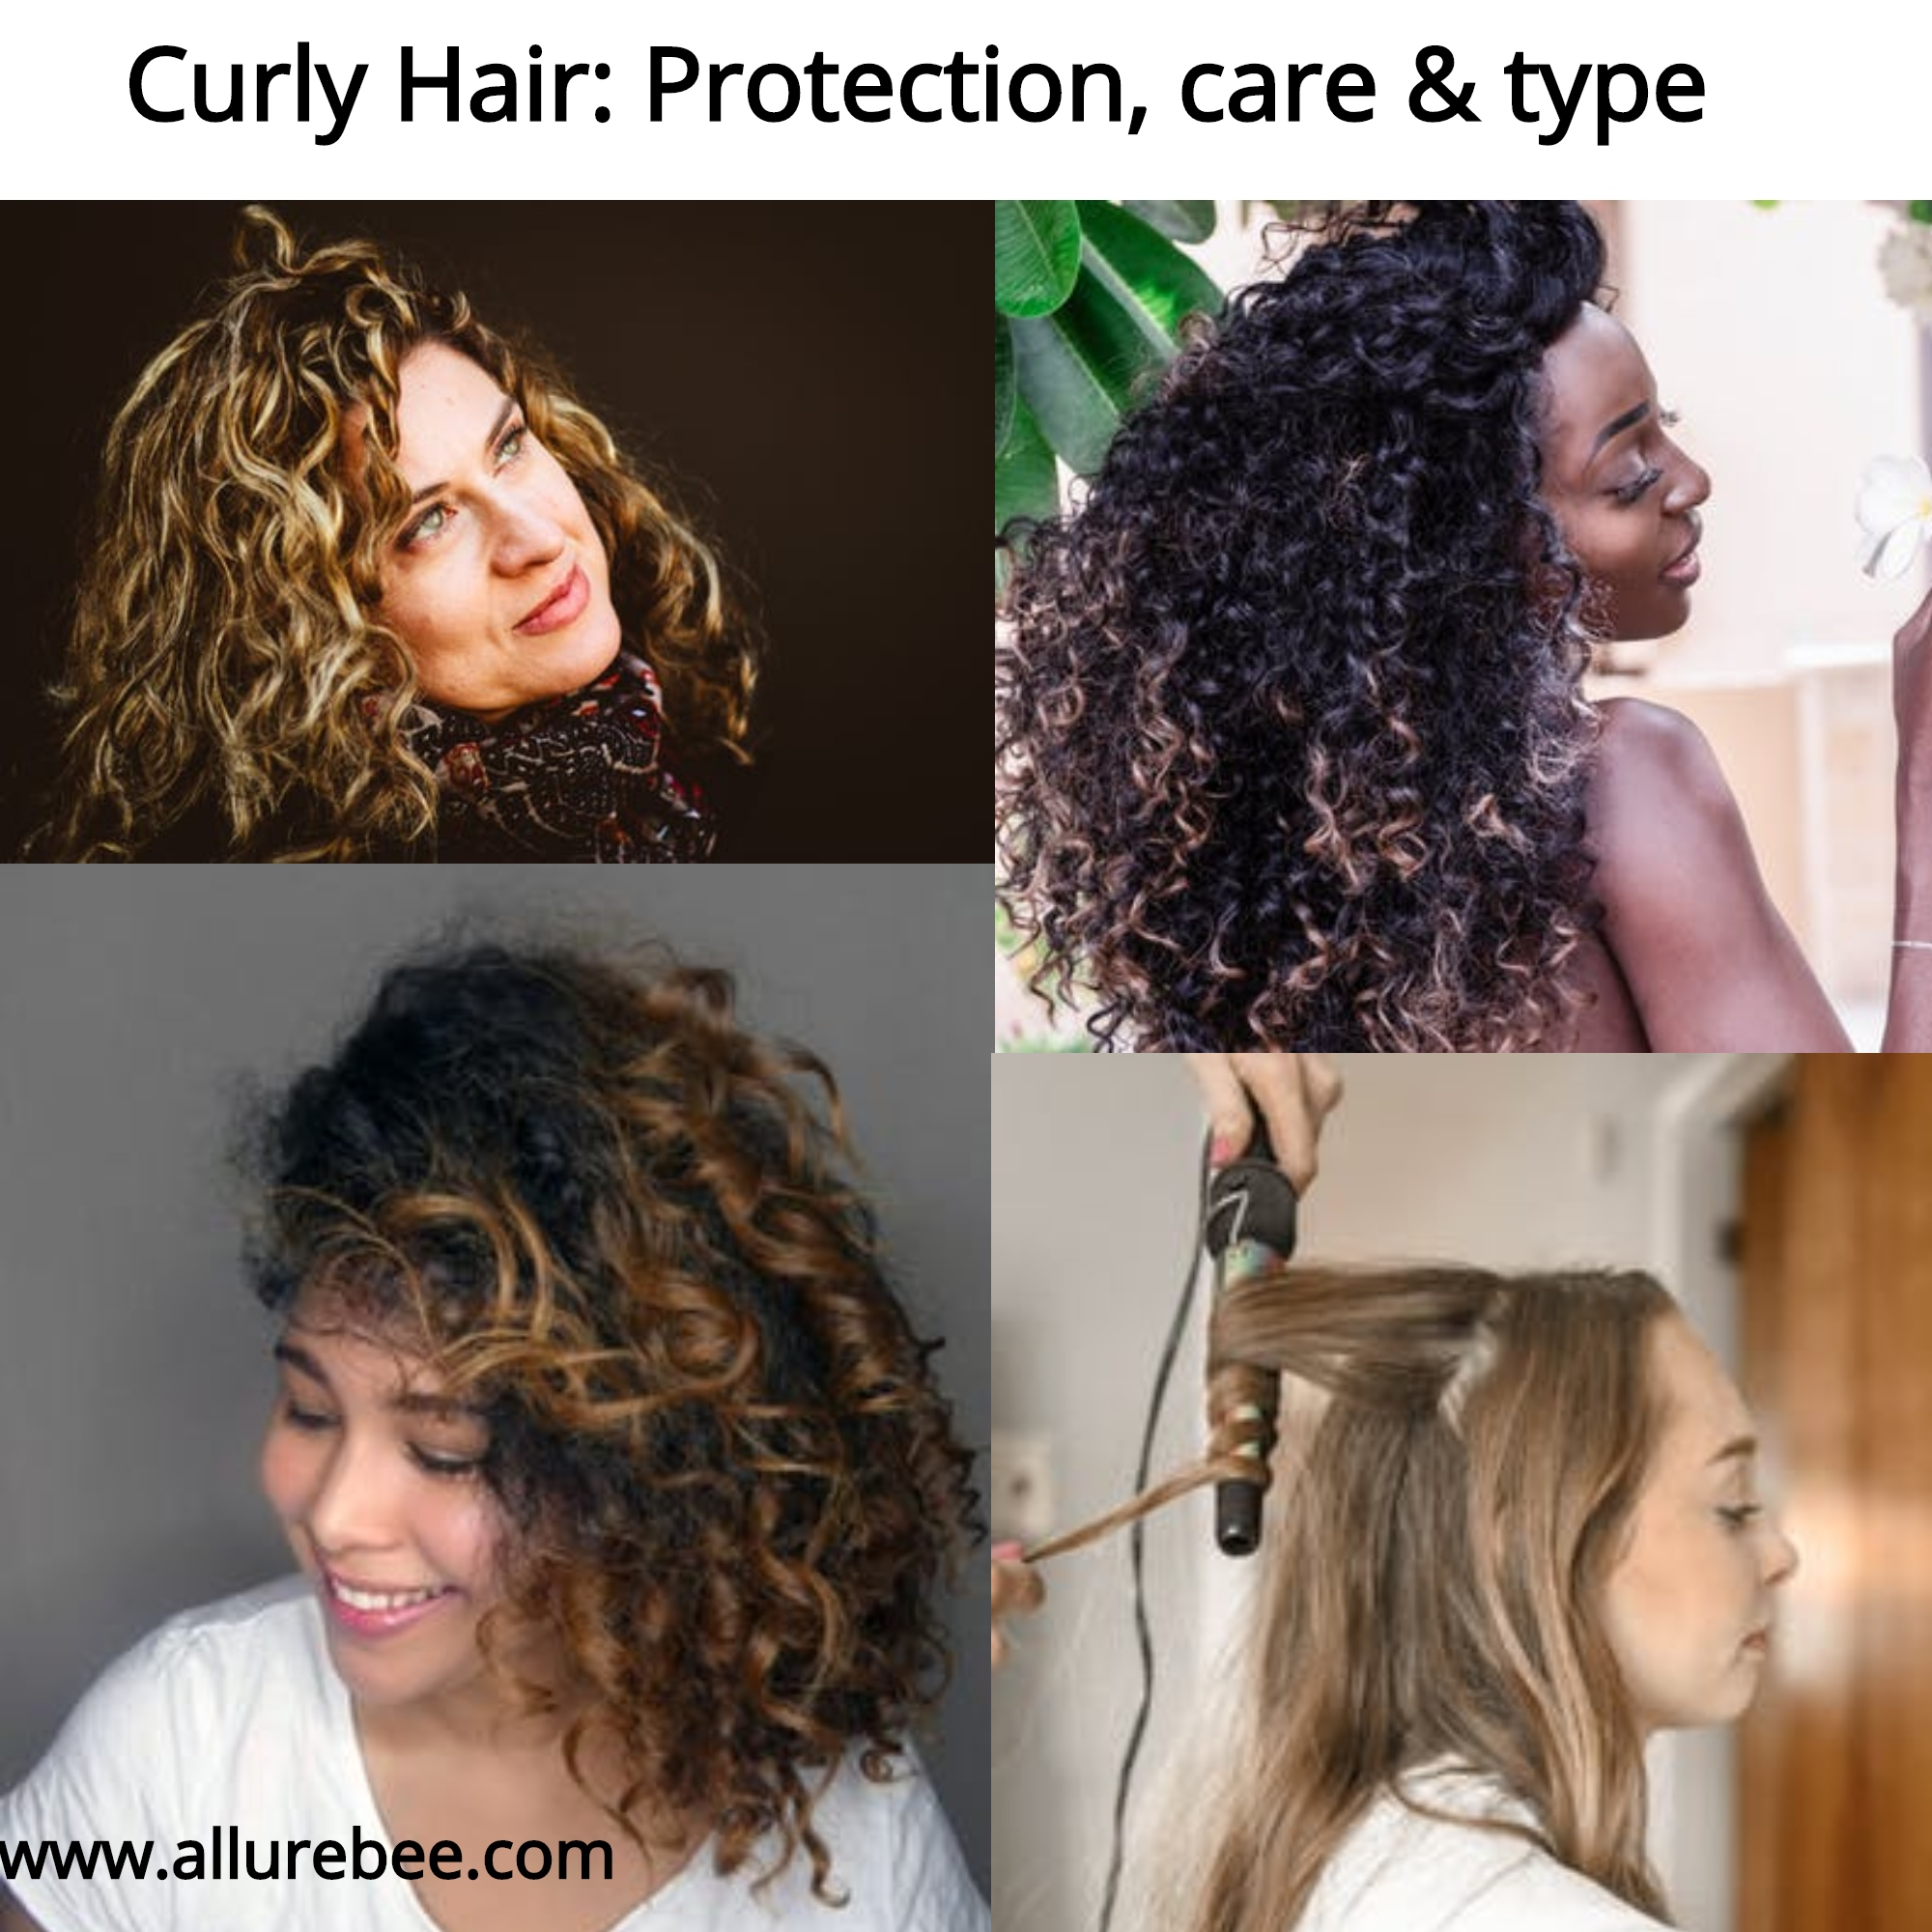 Type of curly hair